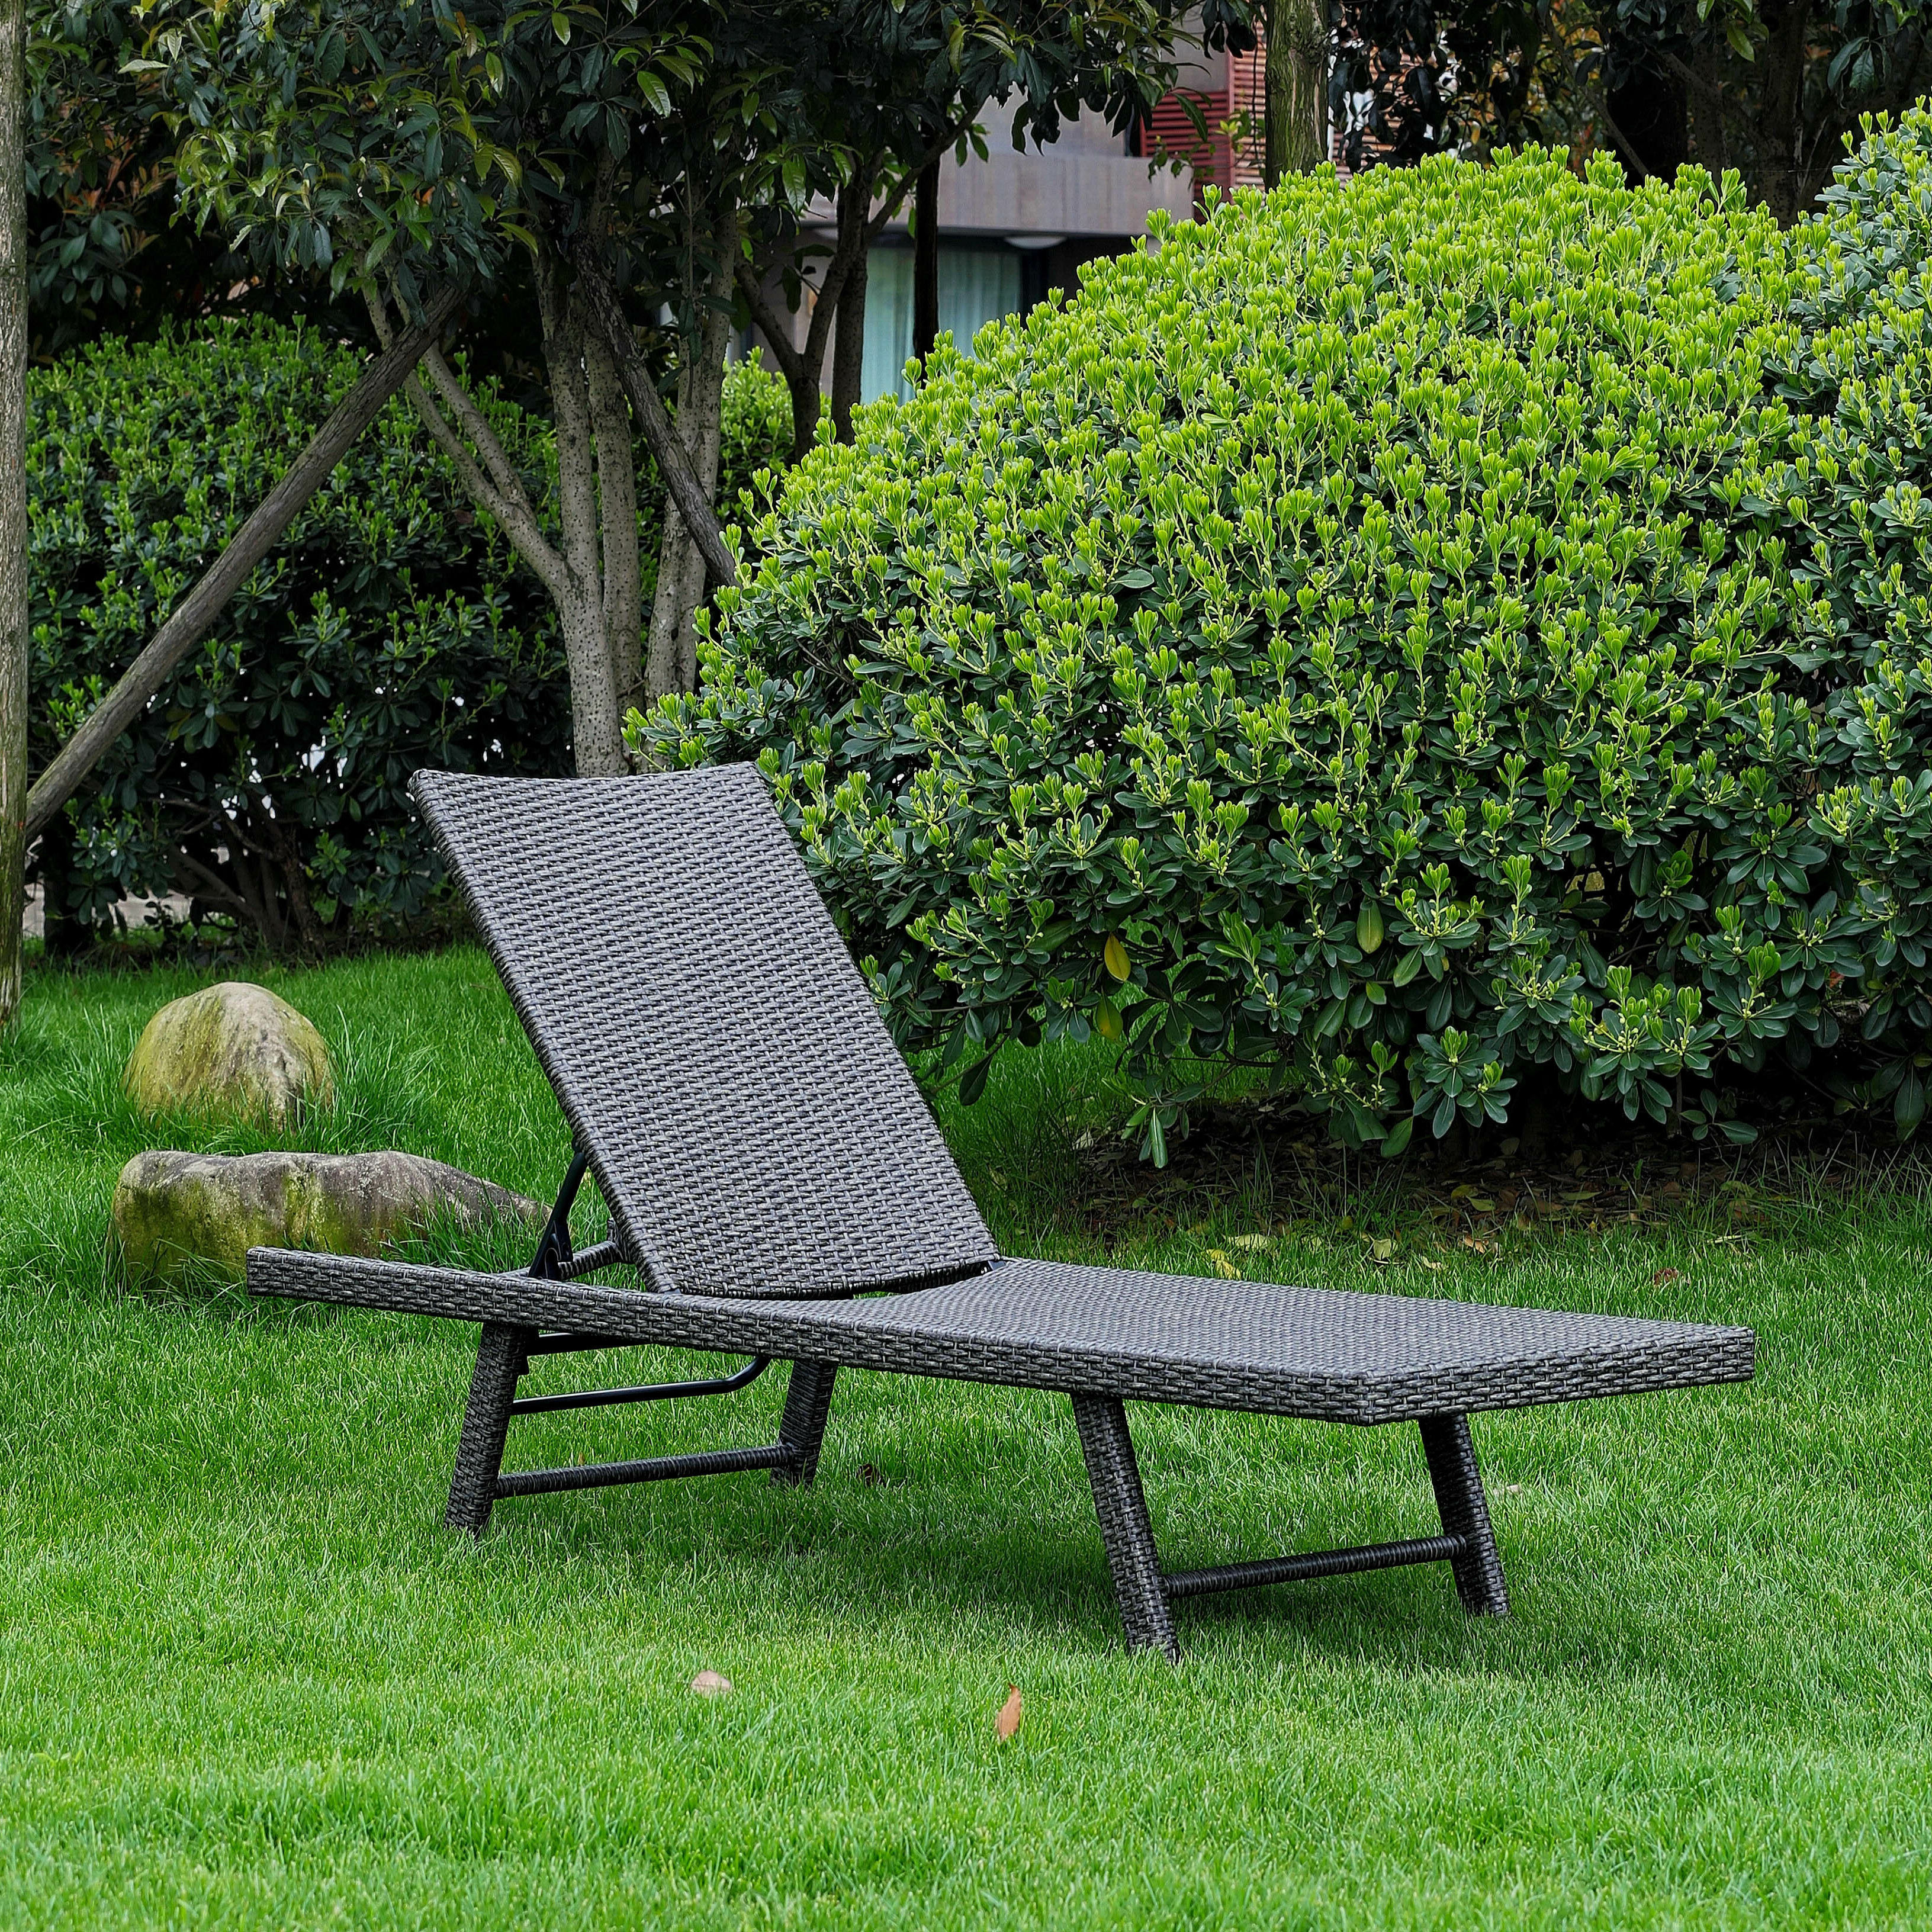 Boveney Multi Position Reclining Chaise Lounge Within Popular Multi Position Iron Chaise Lounges (Gallery 10 of 25)